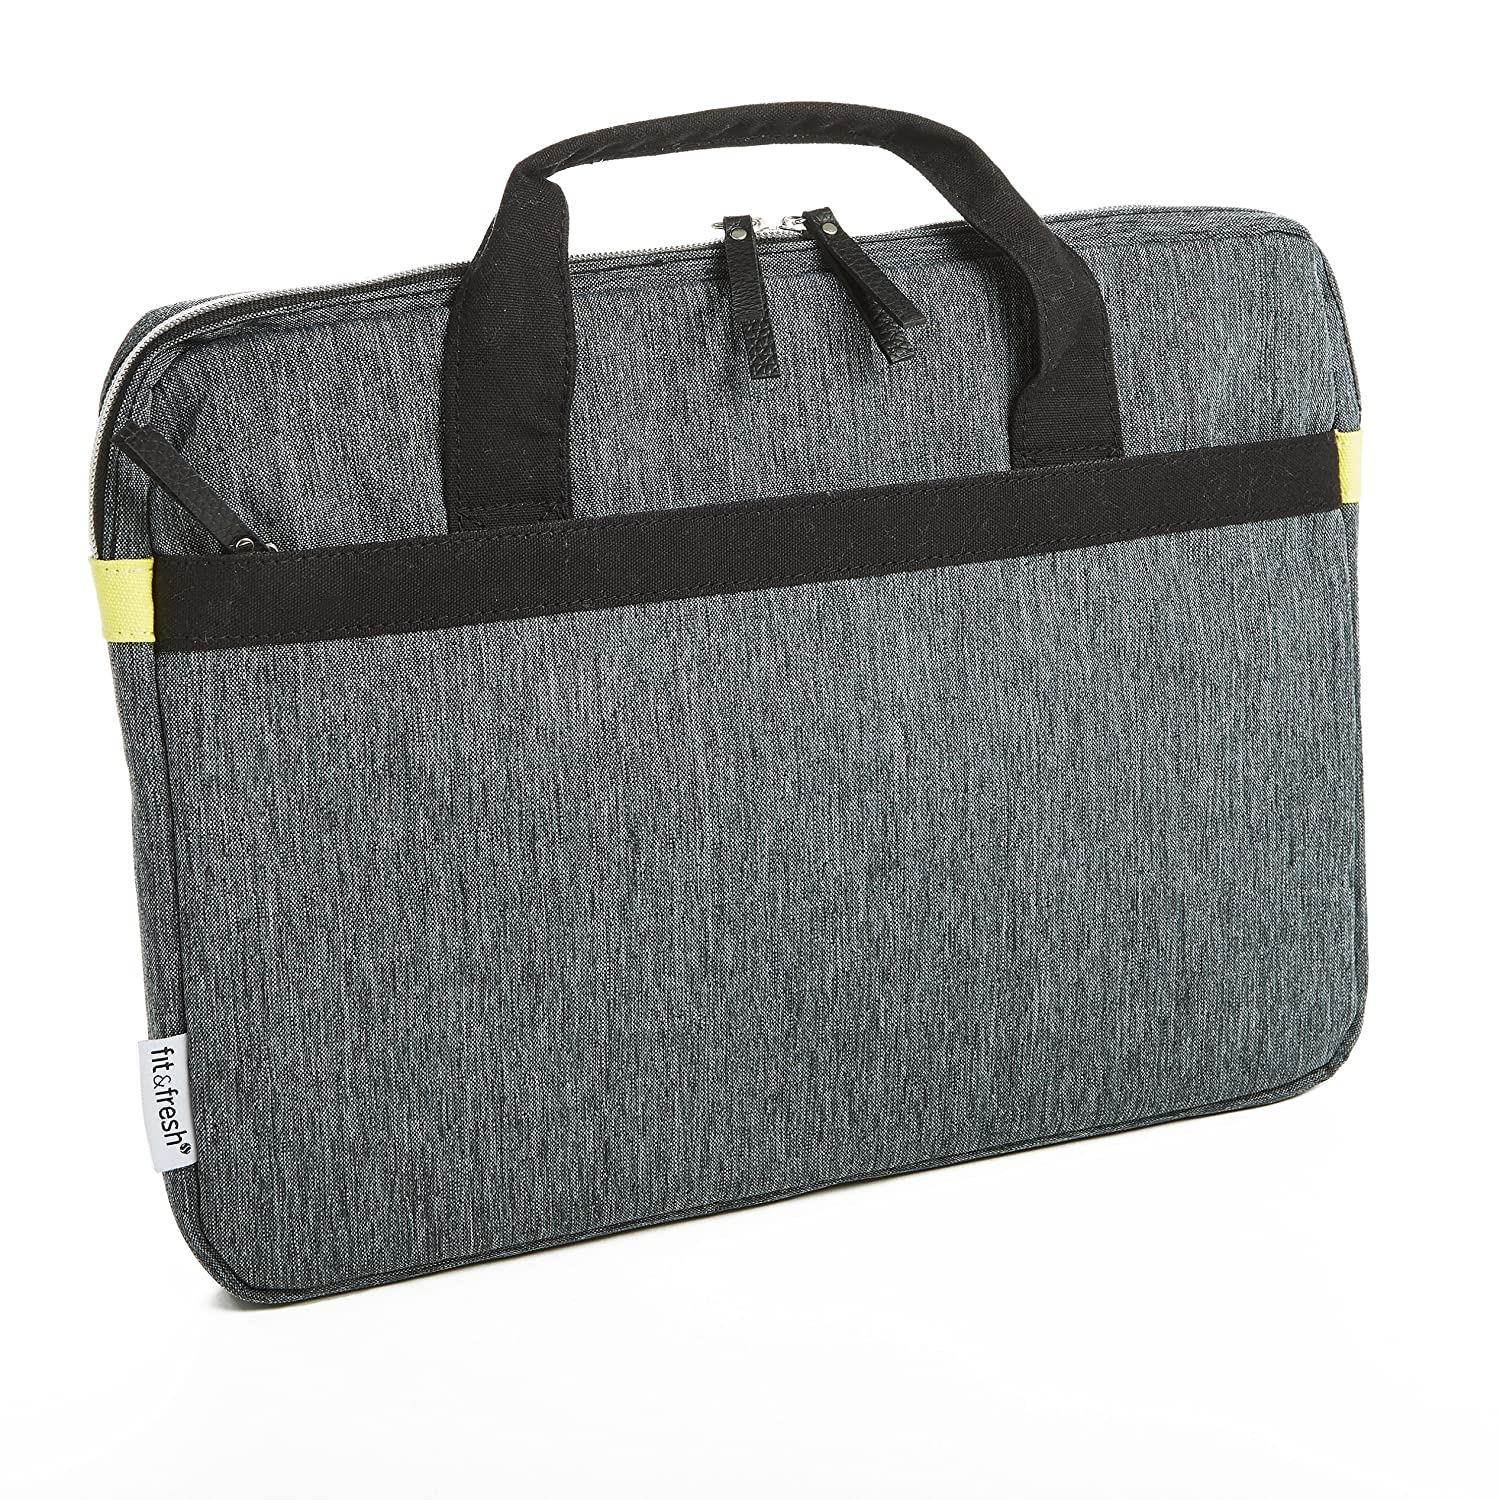 """Fit & Fresh Protective Laptop Case with Handles & Zippered Storage Pocket, fits Apple/Microsoft/Acer/Samsung/Google/Lenovo with up to 15.6"""" Displays, Space Dyed, Gray 60%OFF"""